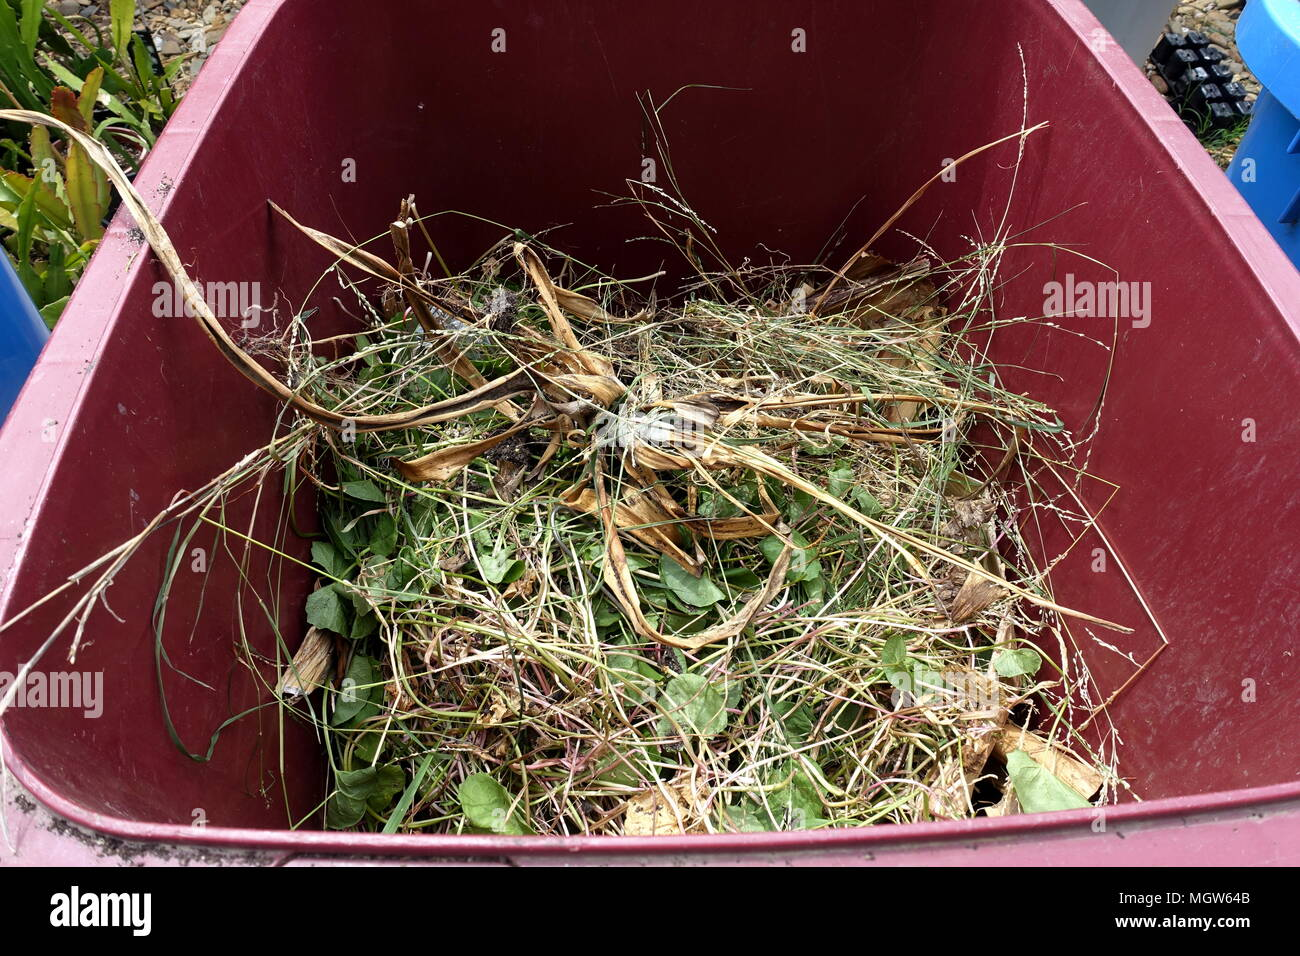 Grass clippings in rubbish bin - Stock Image